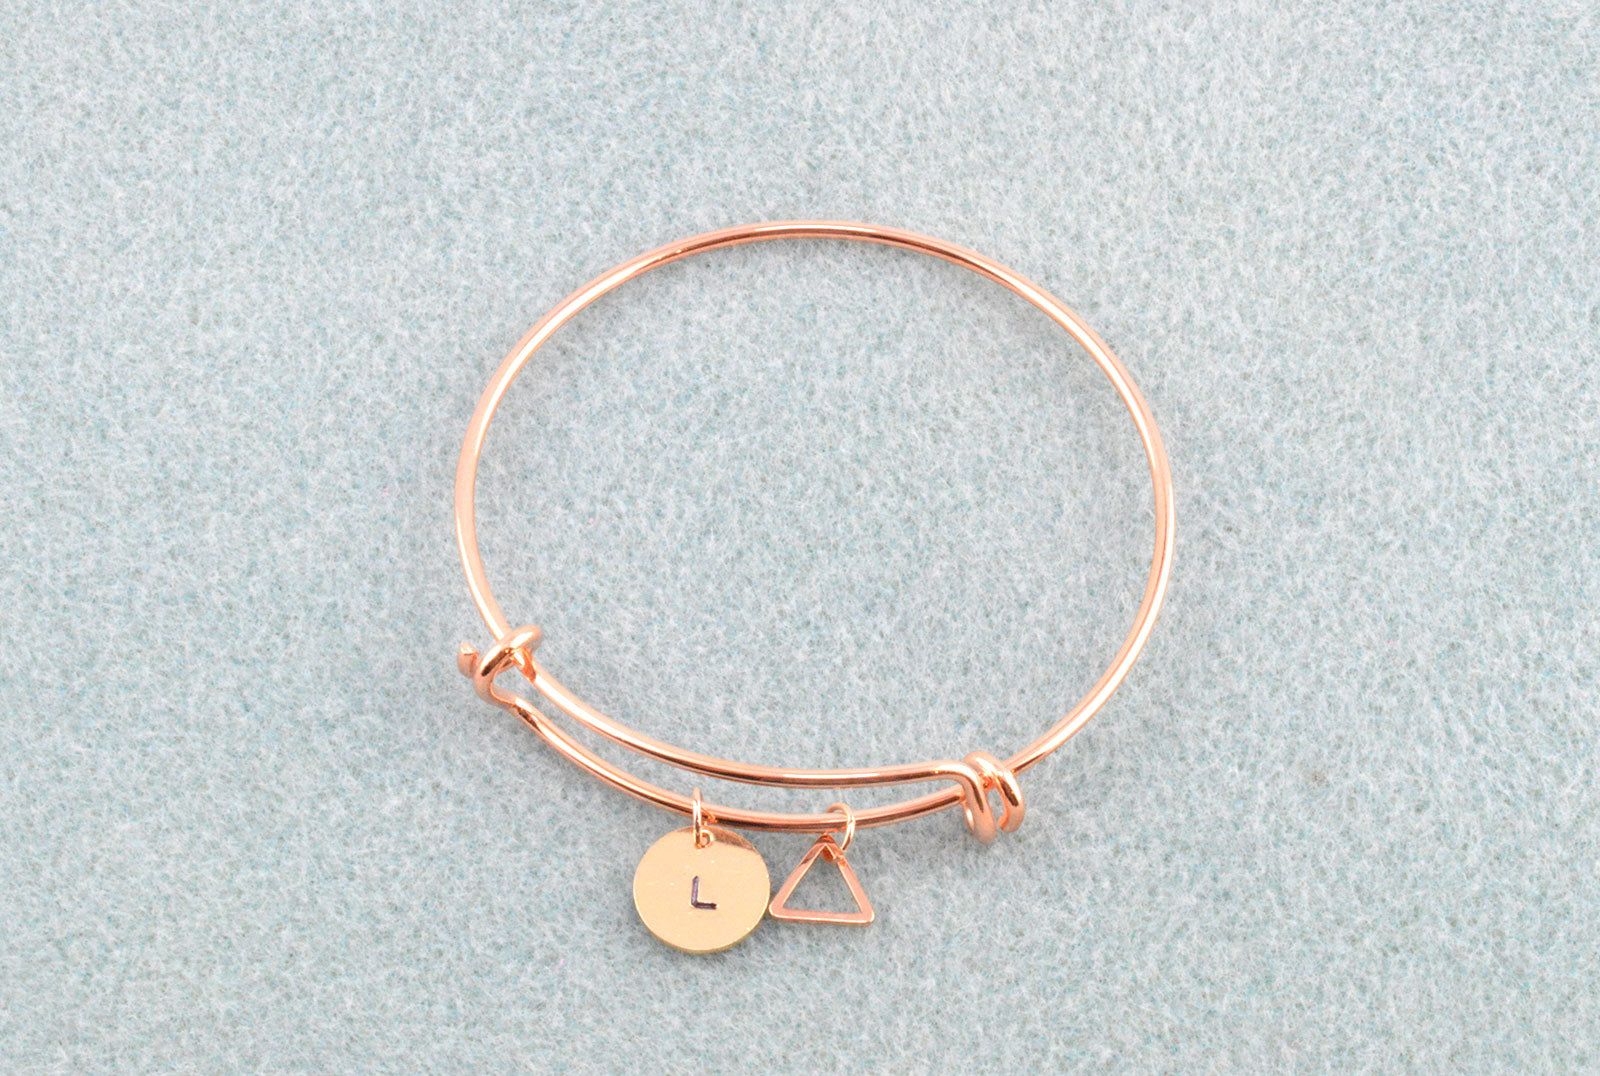 bangles steel for bracelet vintage rose forever charm women gold new stainless heart bangle love